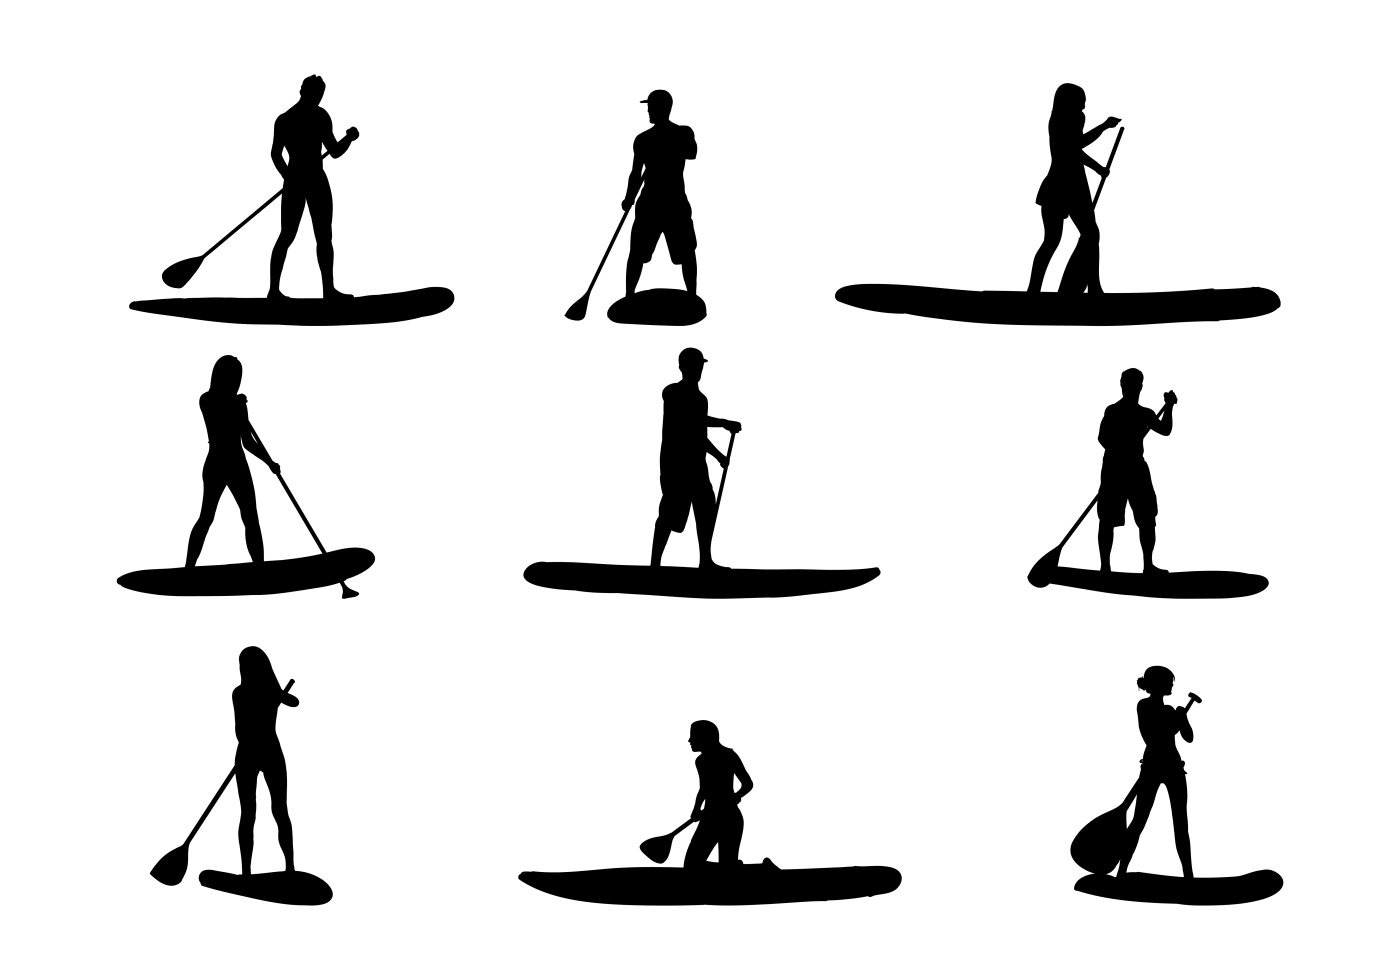 Paddleboard Silhouettes Vectors